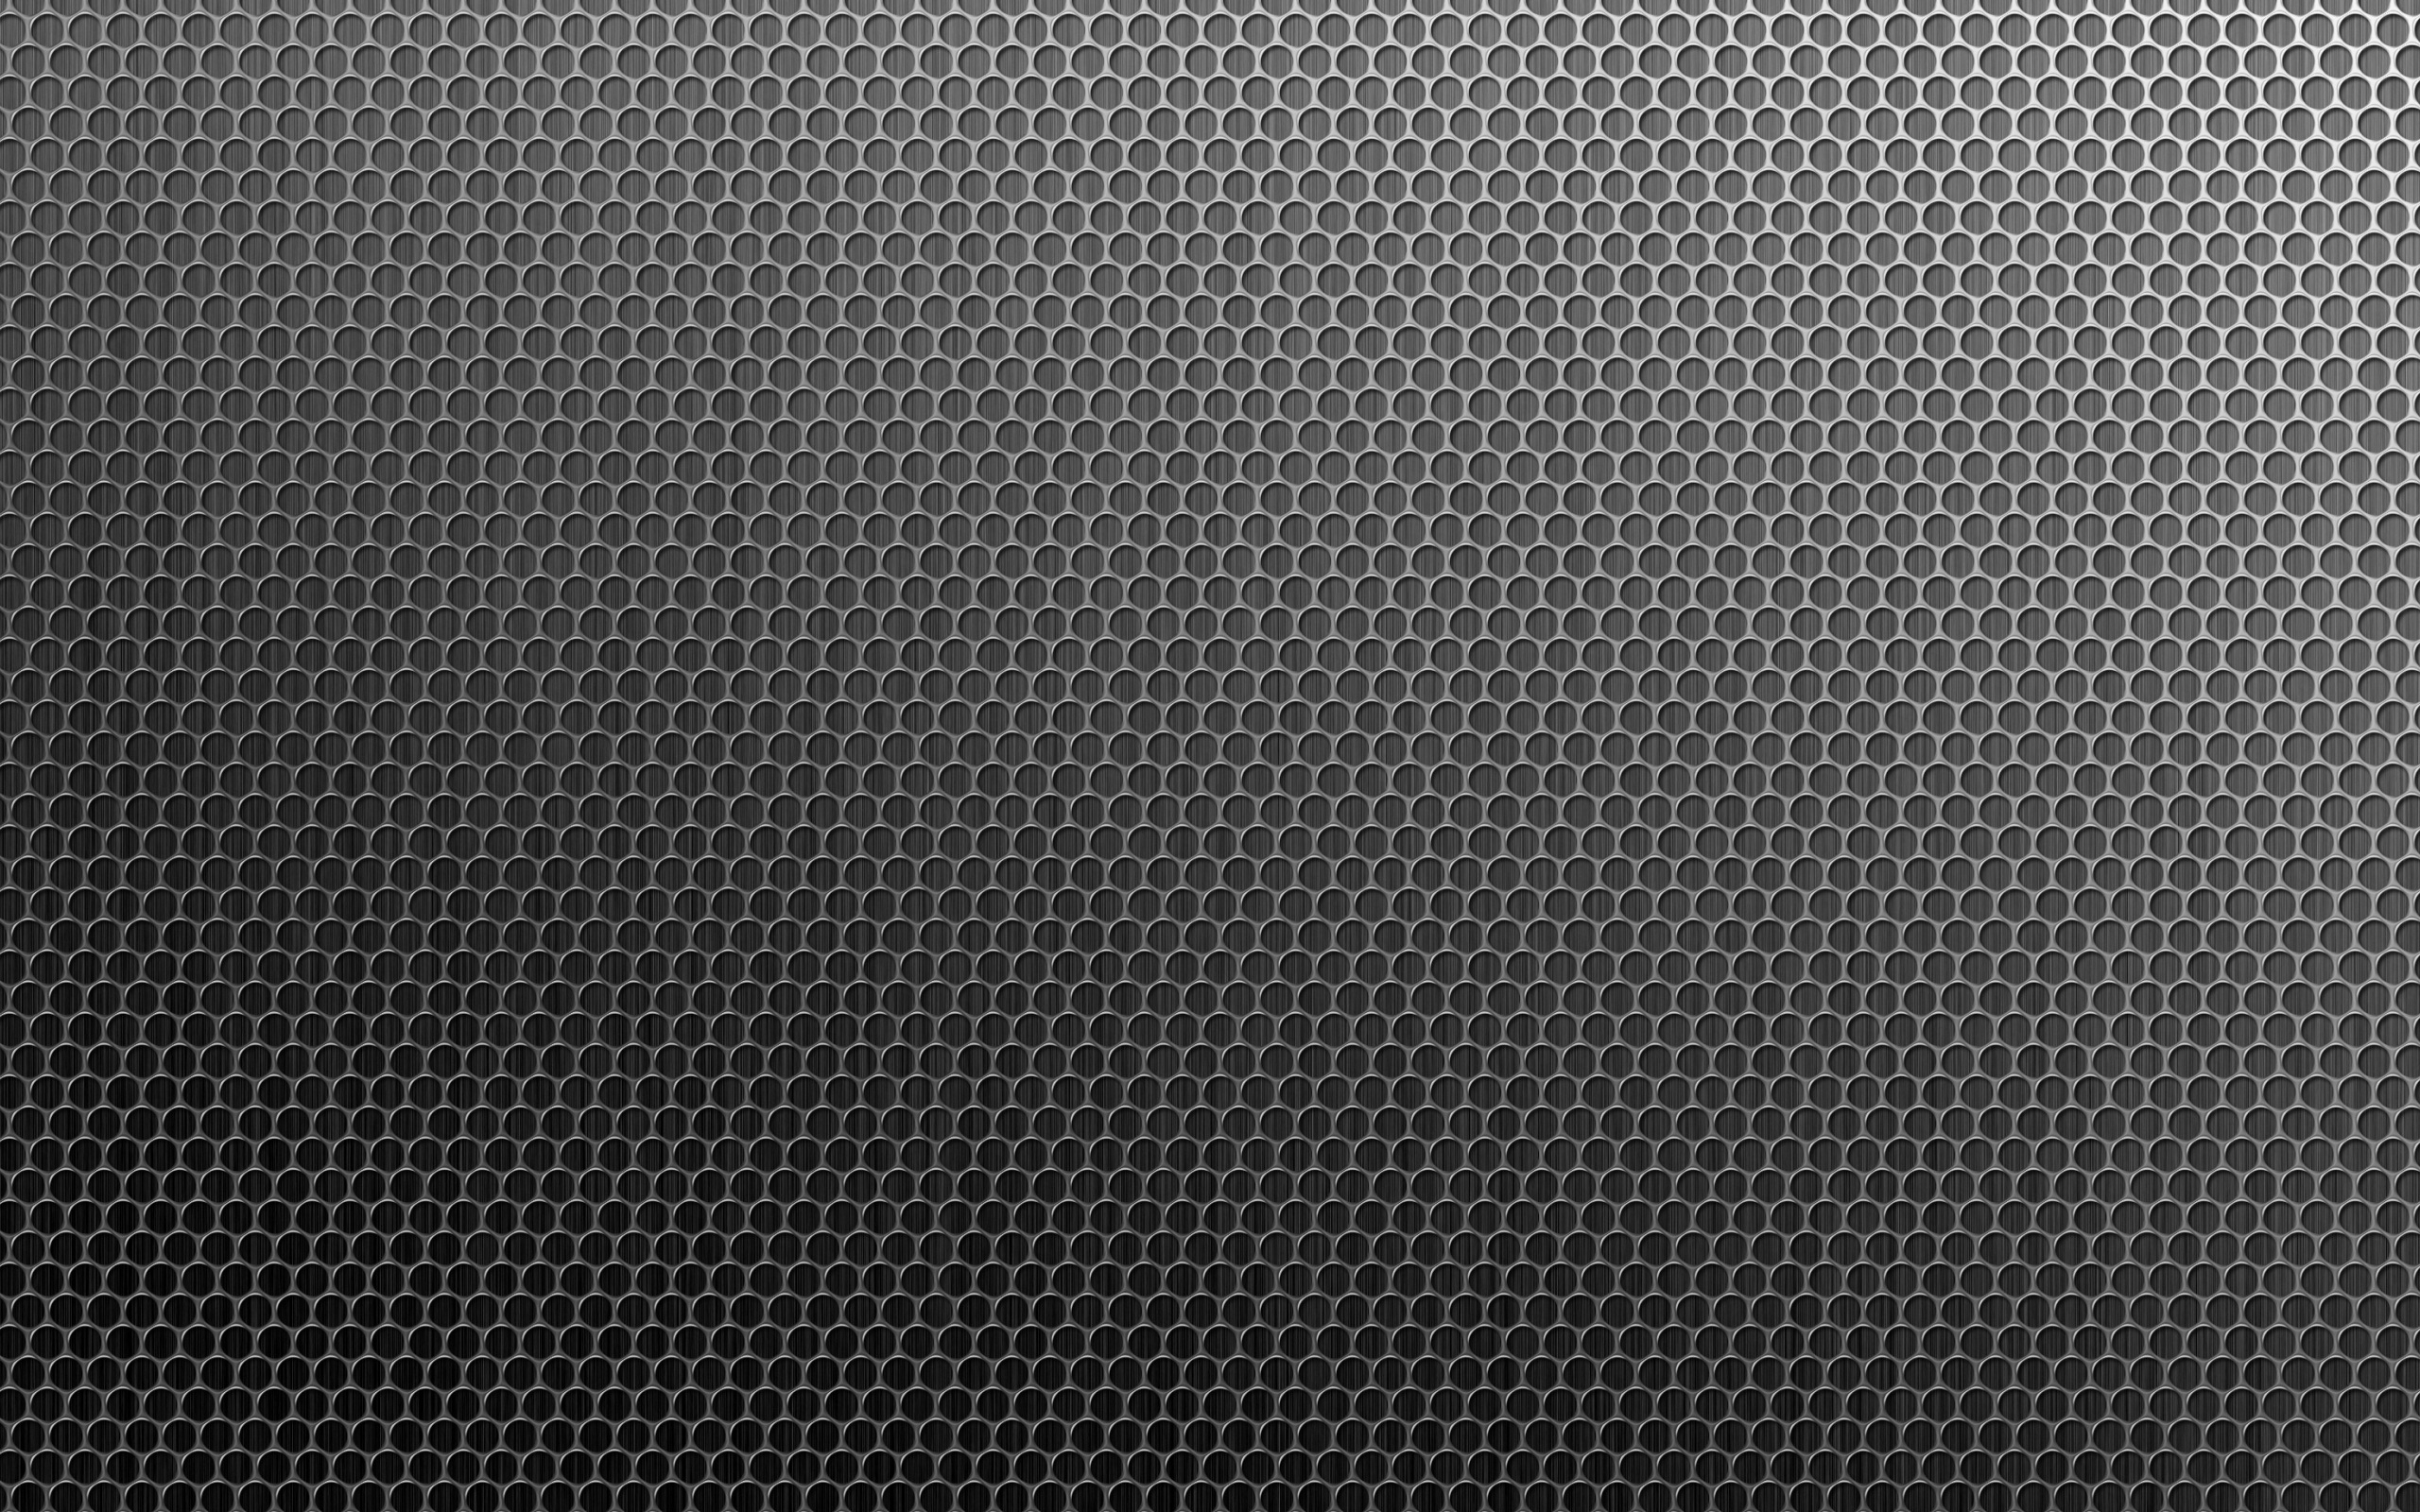 texture, metalическая grid, download photo, metal